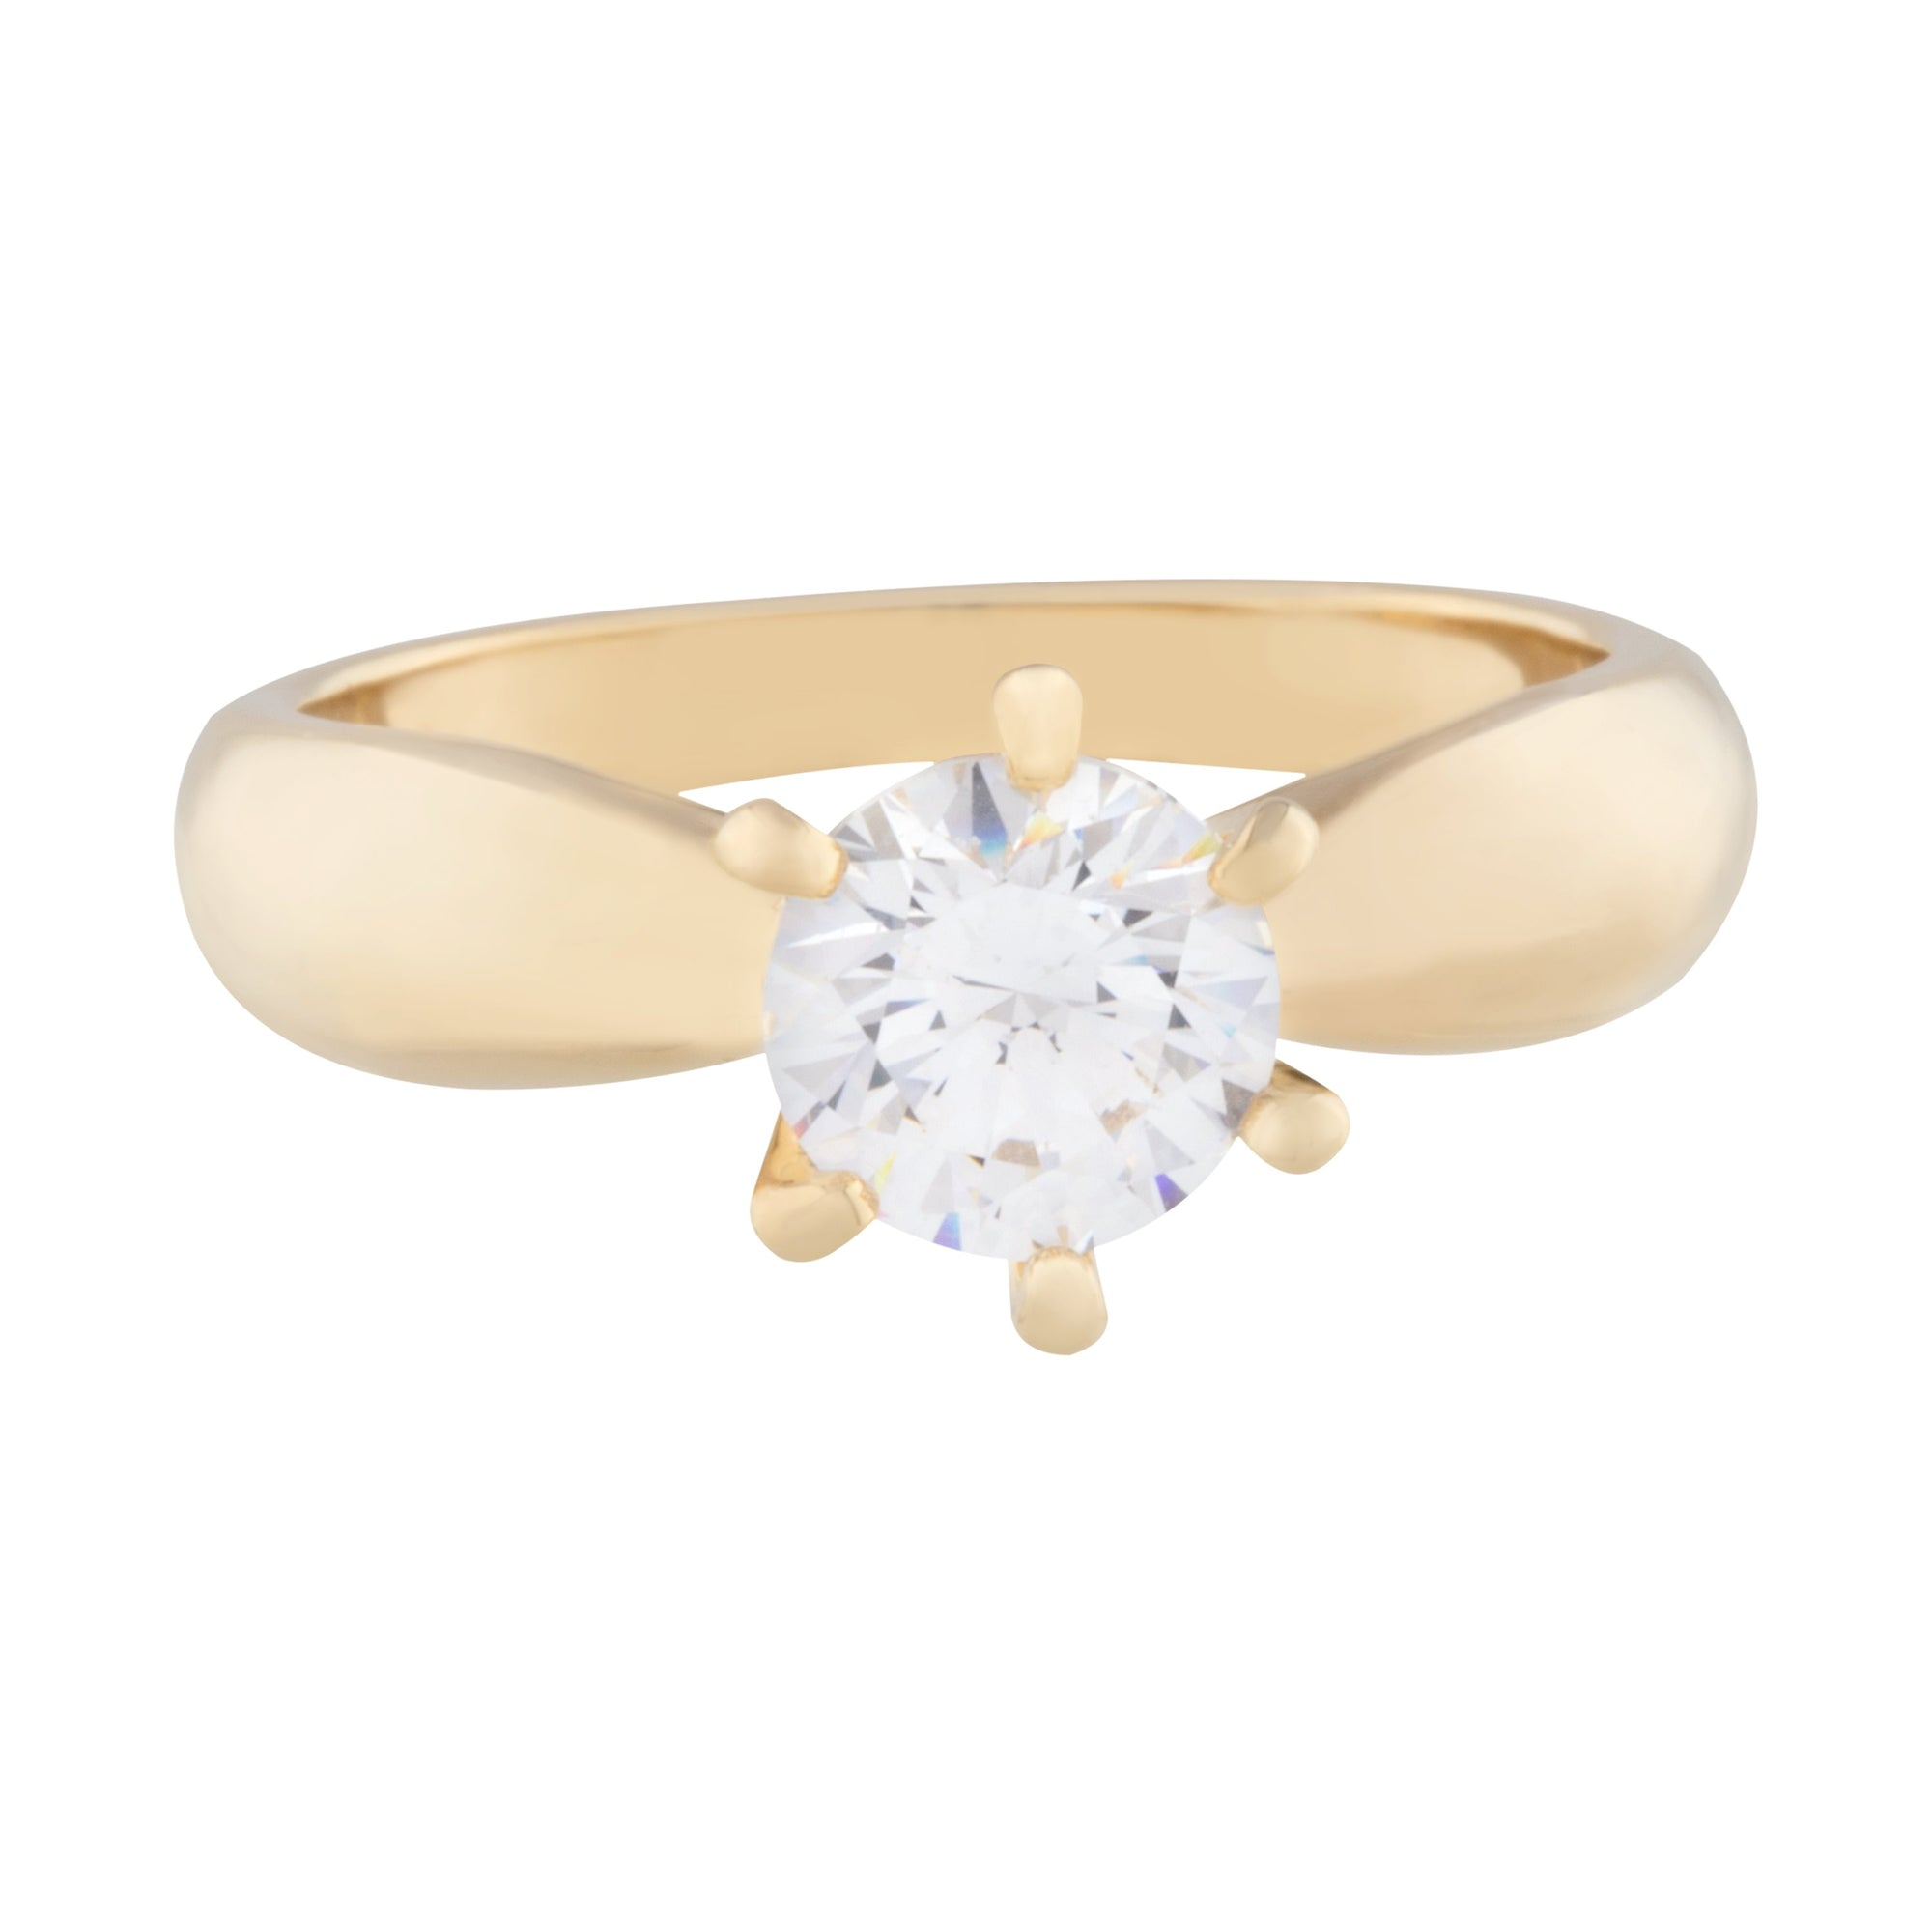 Elizabeth Solitaire Ring Forevercrystals